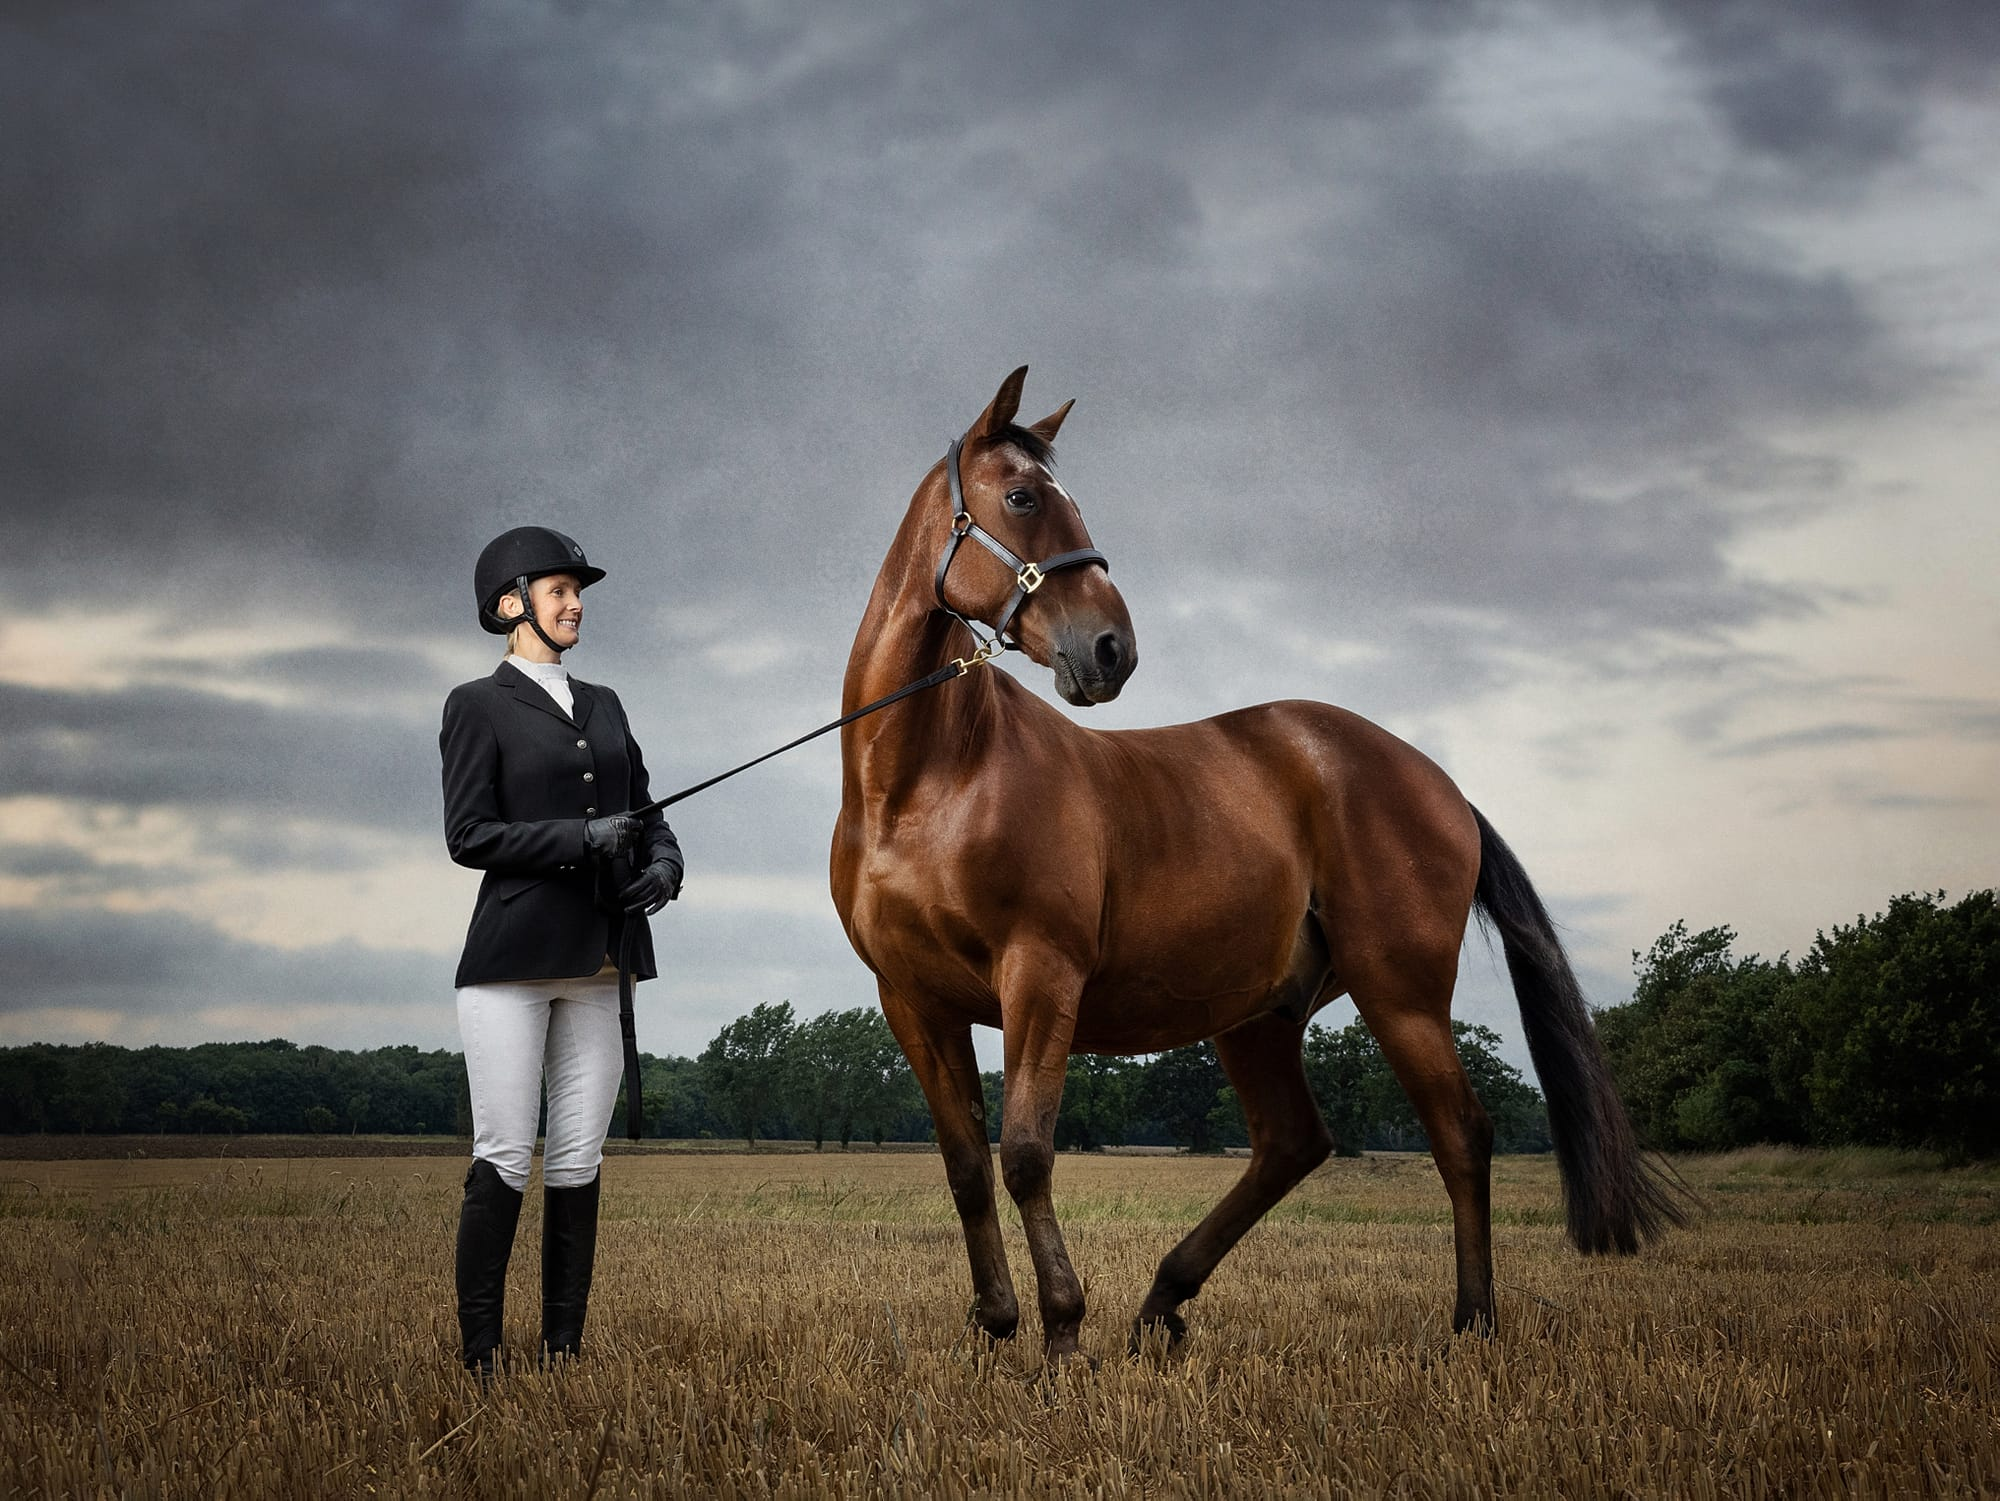 Fine Art Portrait of a horse and rider in a Suffolk field with a dramatic cloudy sky